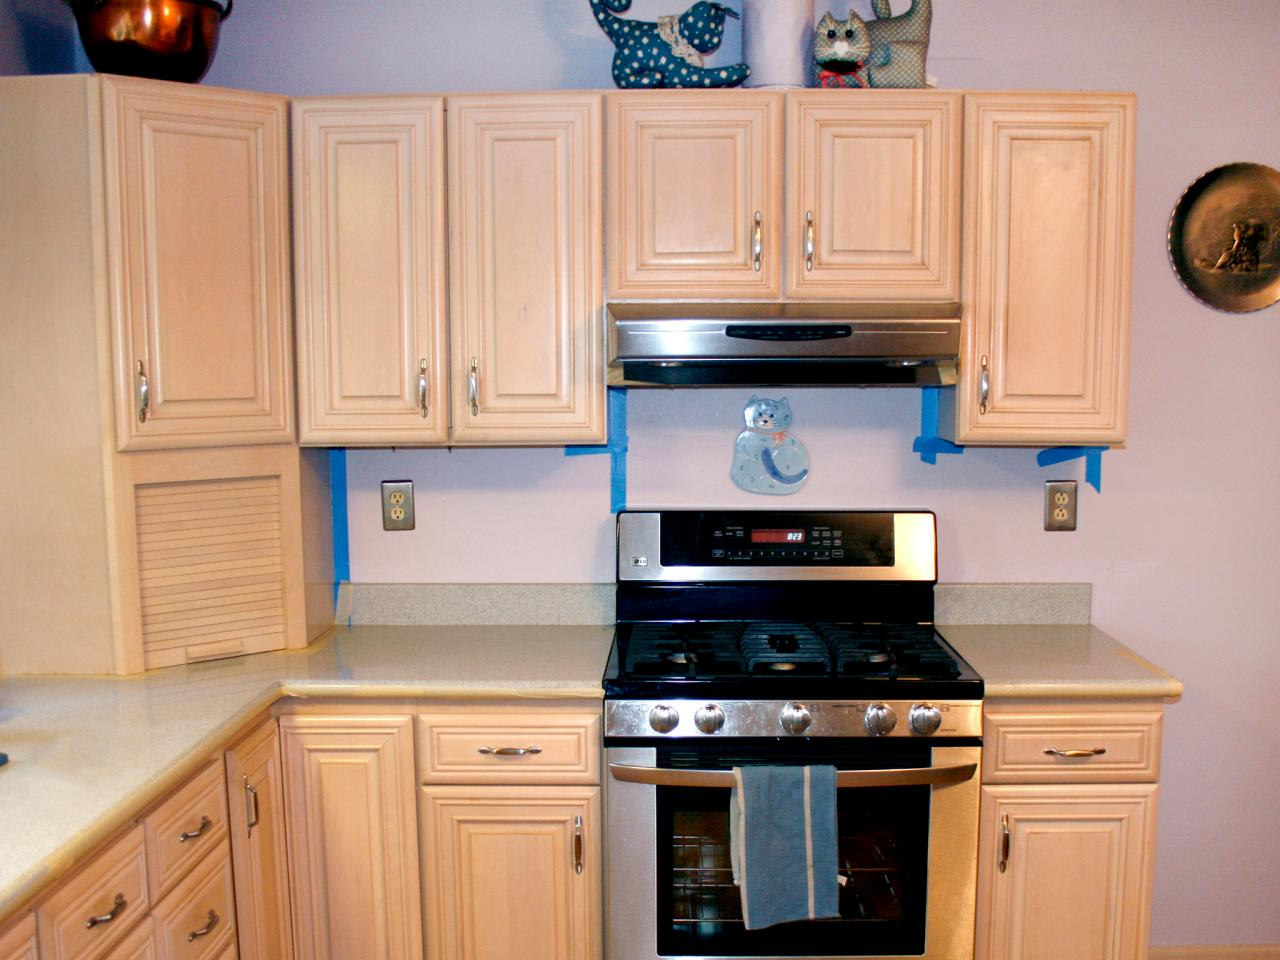 Updating kitchen cabinets pictures ideas tips from hgtv hgtv - Kitchen images with white cabinets ...